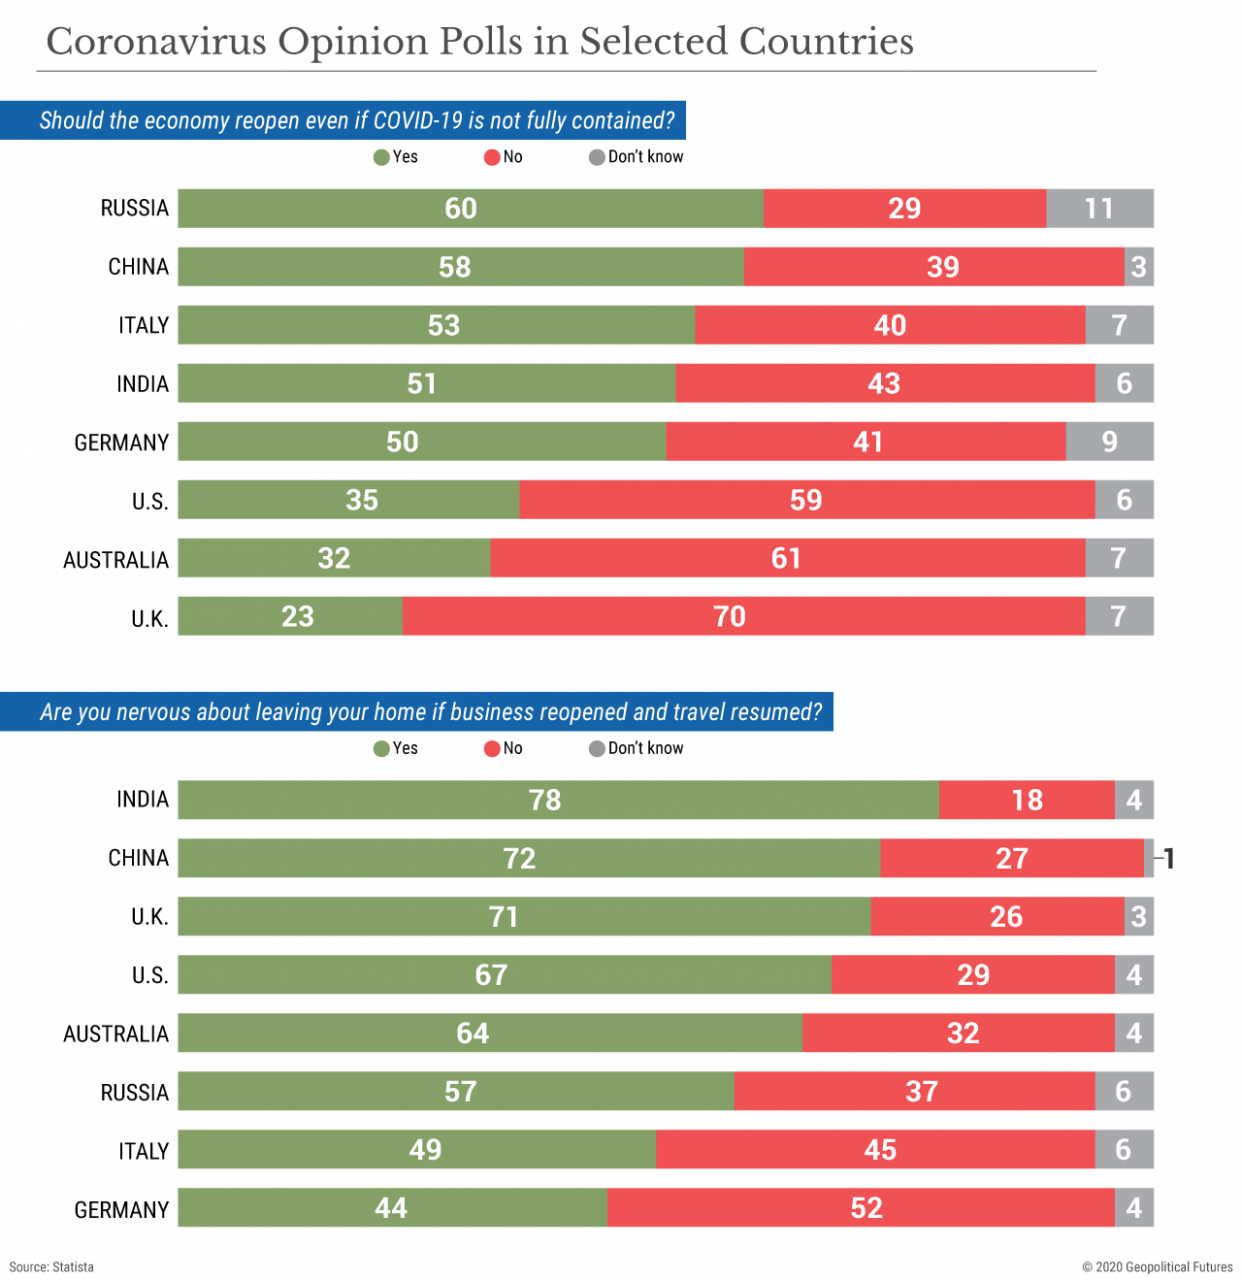 Coronavirus Opinion Polls in Selected Countries